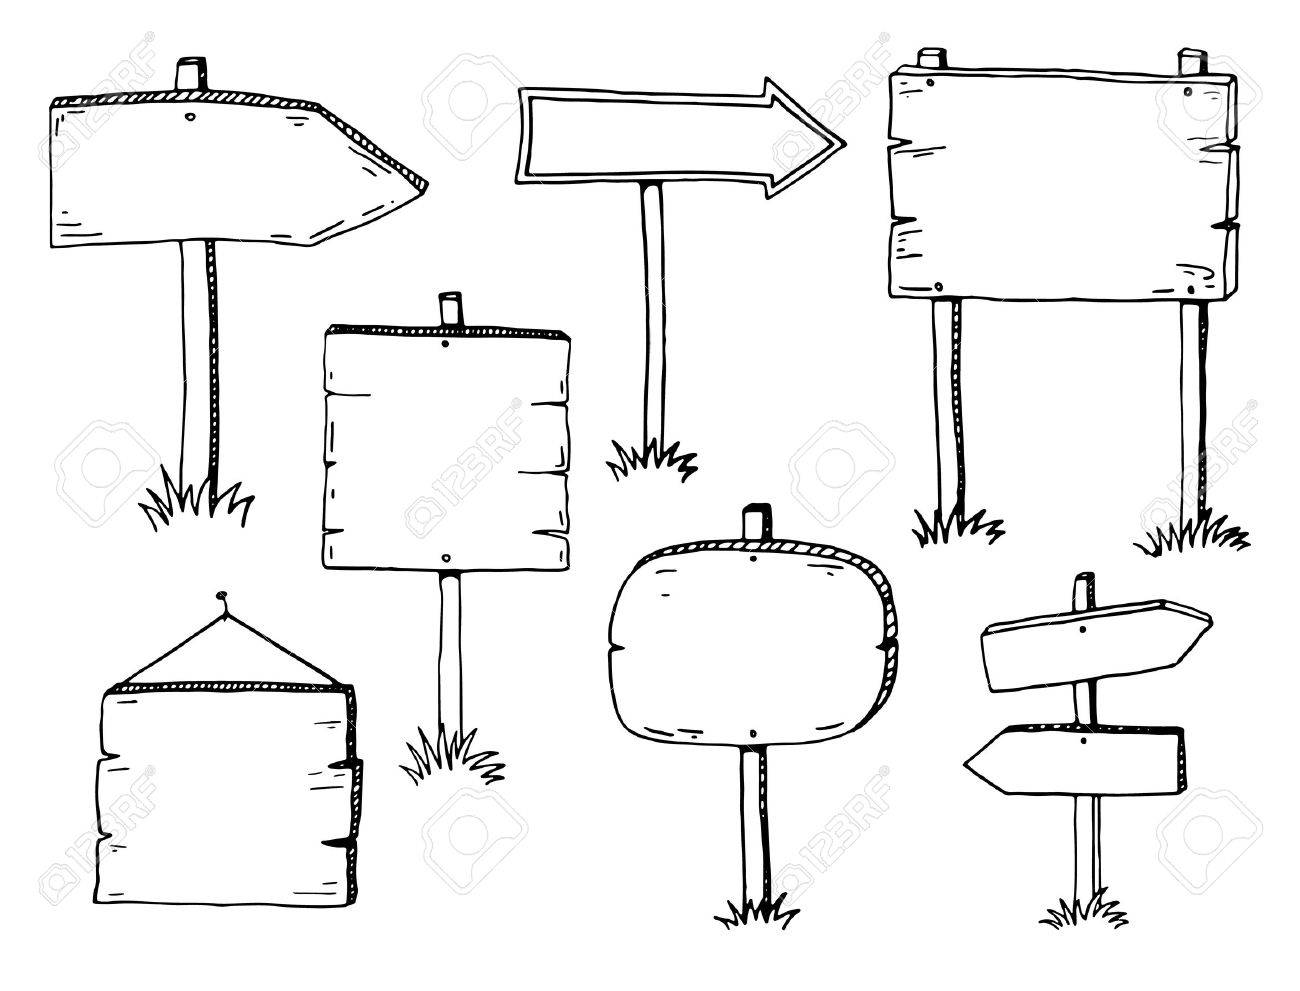 Hand drawn doodle wood signs and arrows - 50076282